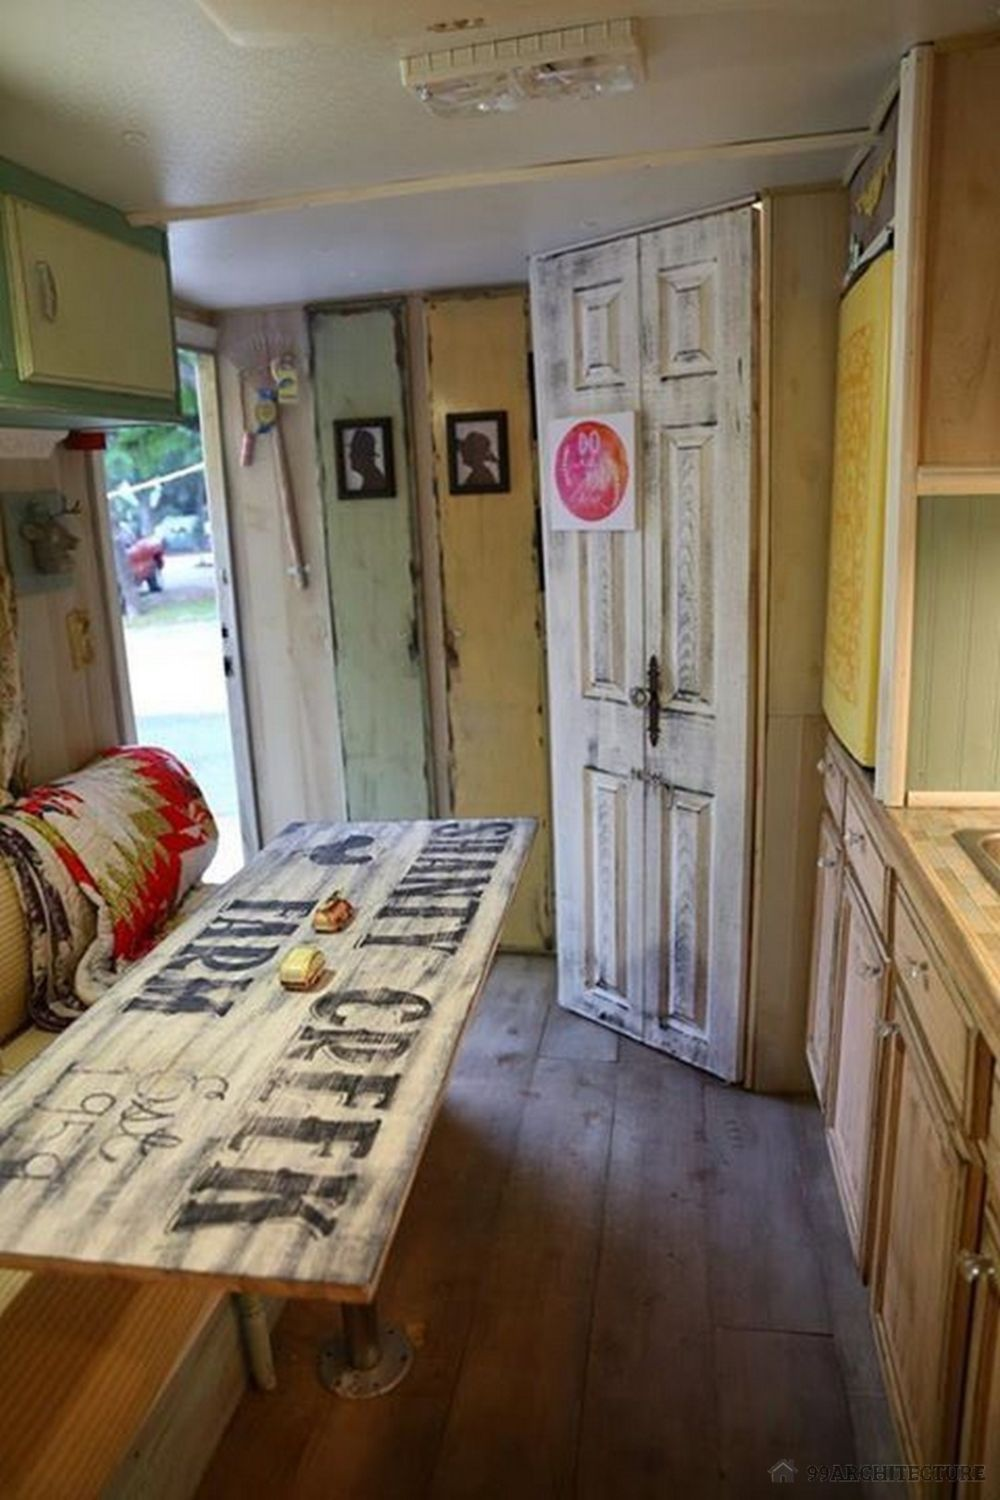 51 Clever Rv Hacks And Remodel Ideas For Amazing Camper